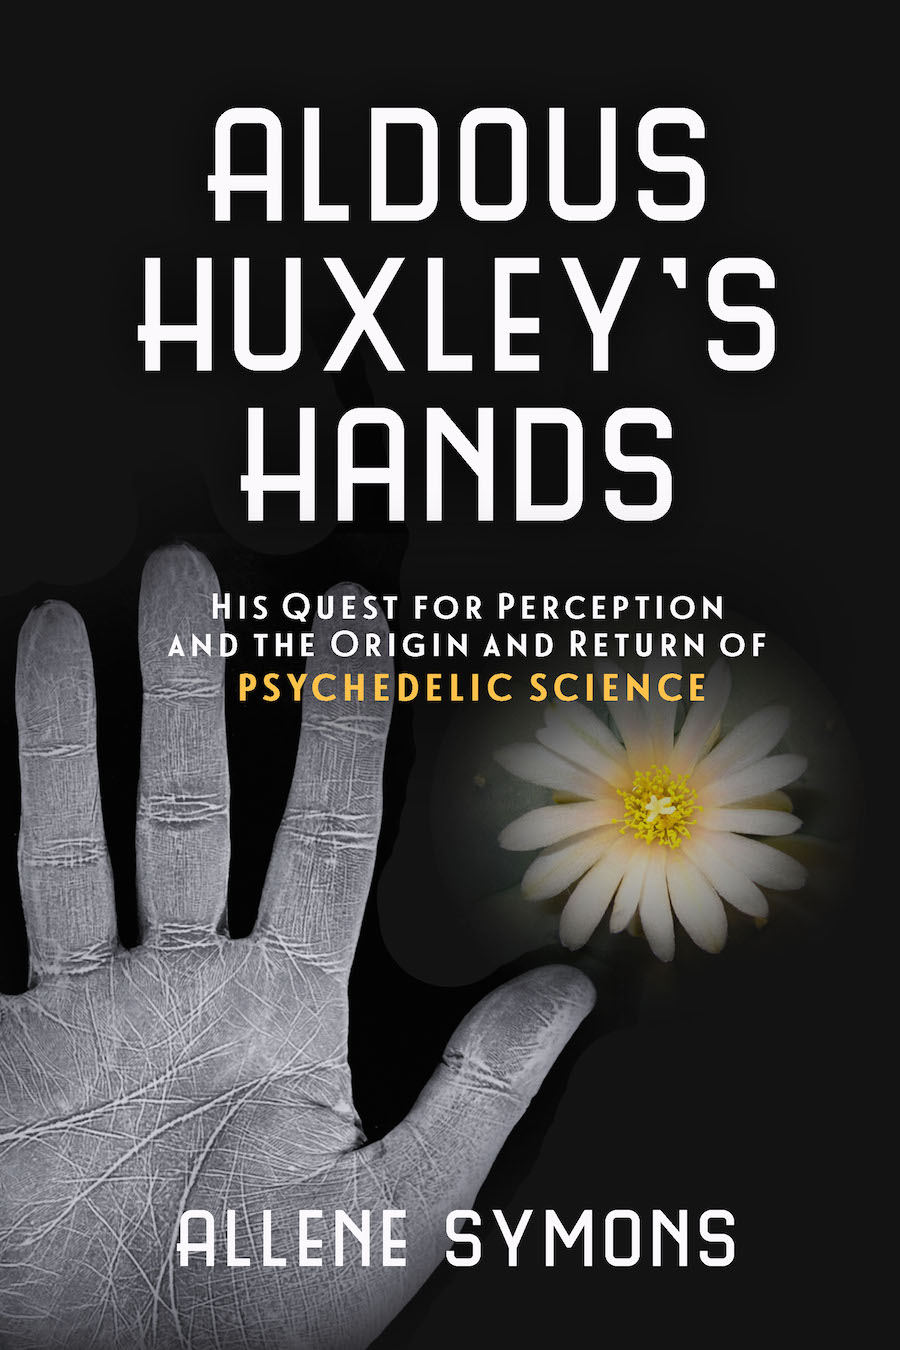 social customs in aldous huxleys brave new world Aldous huxley's brave new world is a twentieth century classic that cannot be overlooked a contemporary of orwell's 1984, the novel also defined the dystopian genre that now populates bookshelves it is one of the first to present a criticism of society through the portrayal of a negative utopia in this aspect, the novel is interesting.